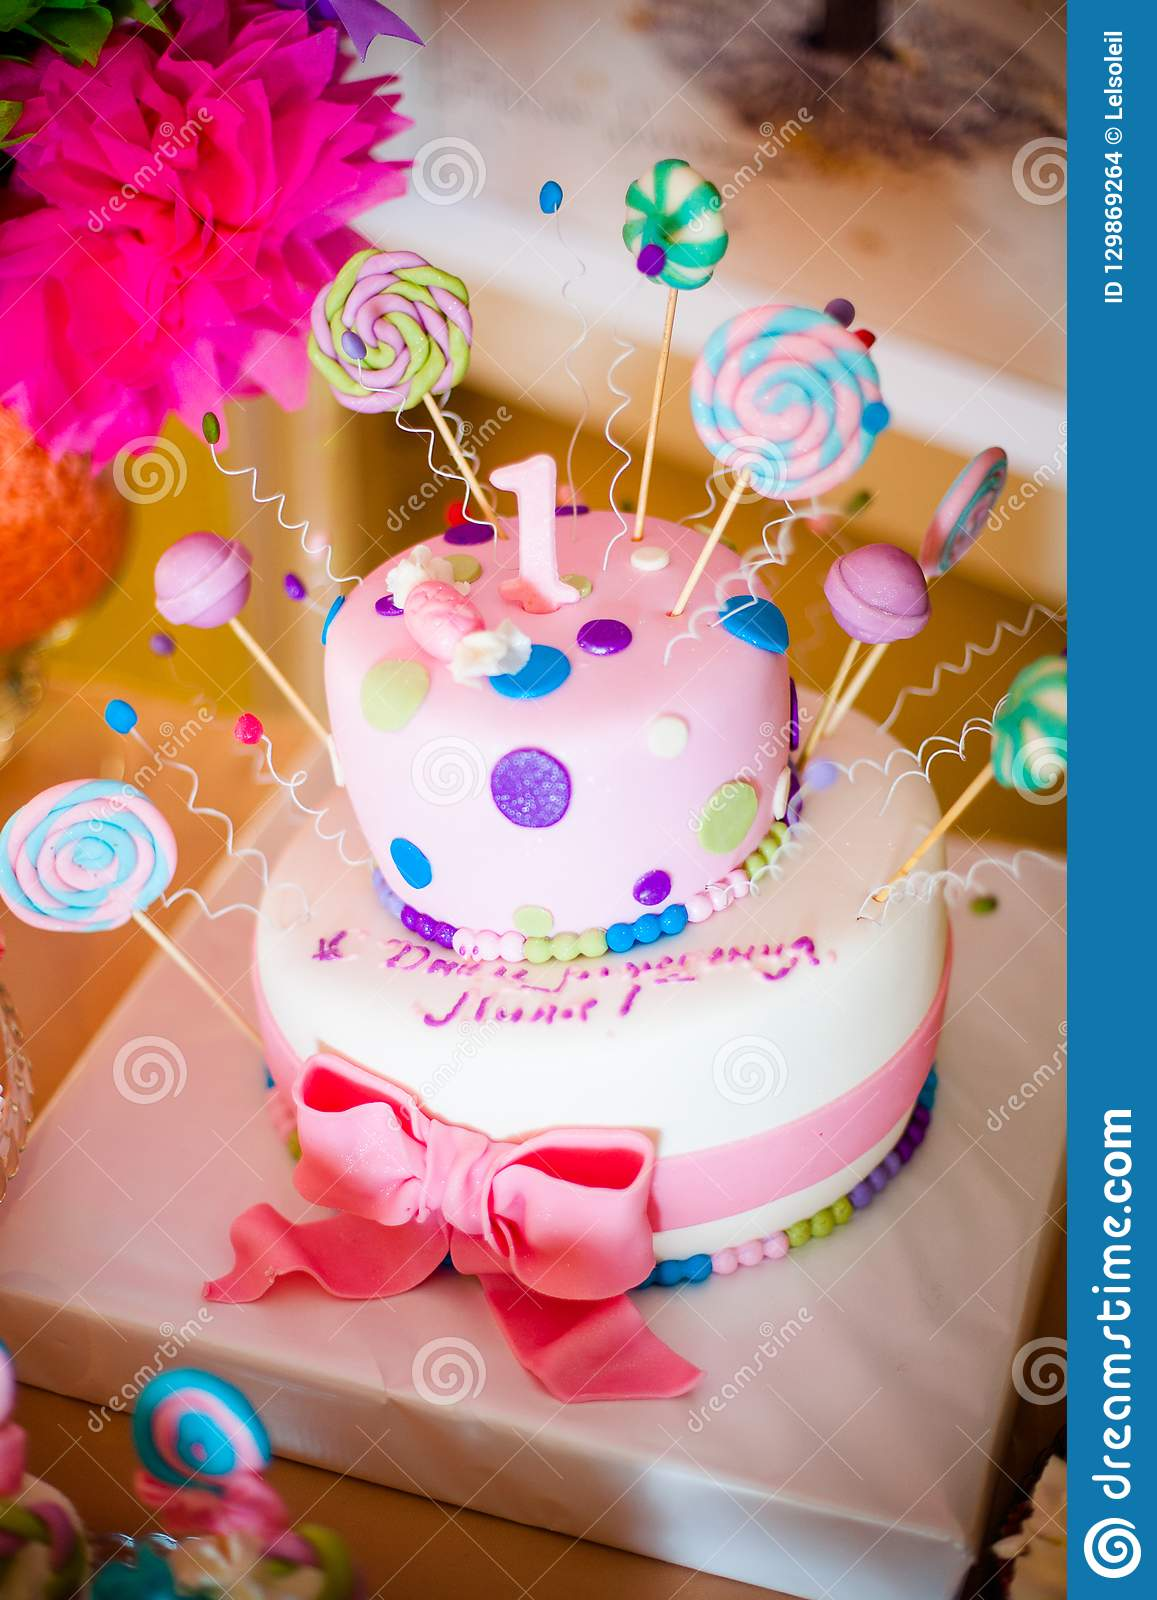 Sensational First Birthday Pink Cake With Lollypops And One Candle For Little Funny Birthday Cards Online Sheoxdamsfinfo